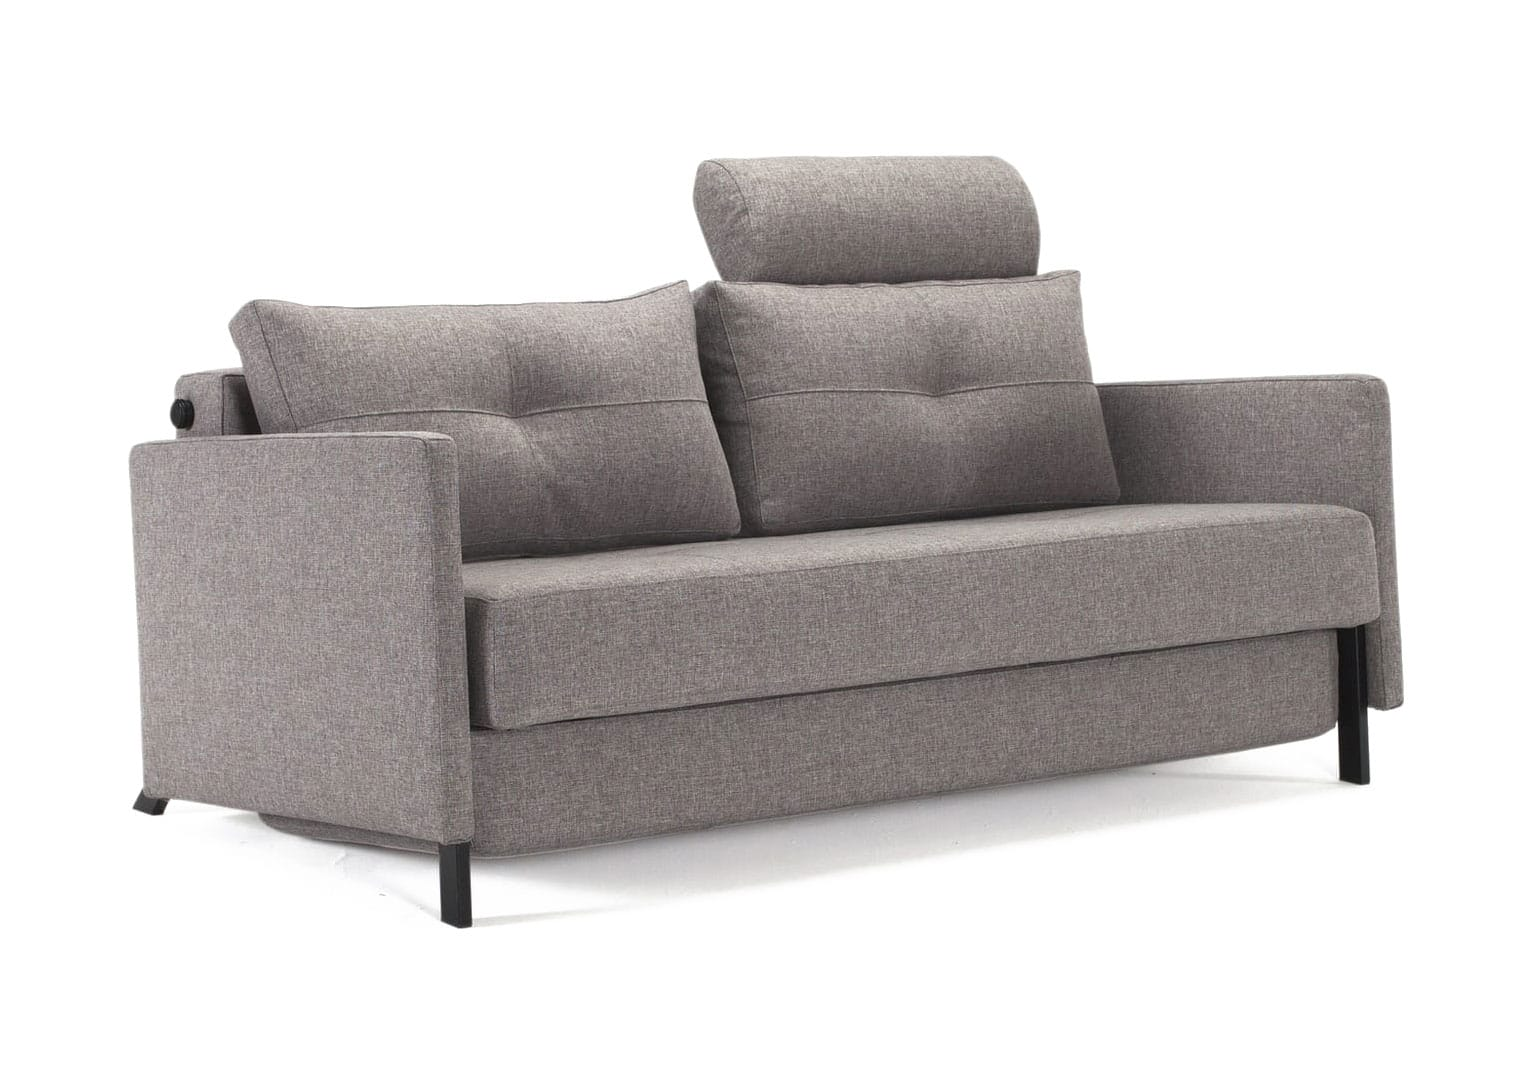 Cubed Deluxe Sofa Bed w Arms Queen Size Mixed Dance Natural by